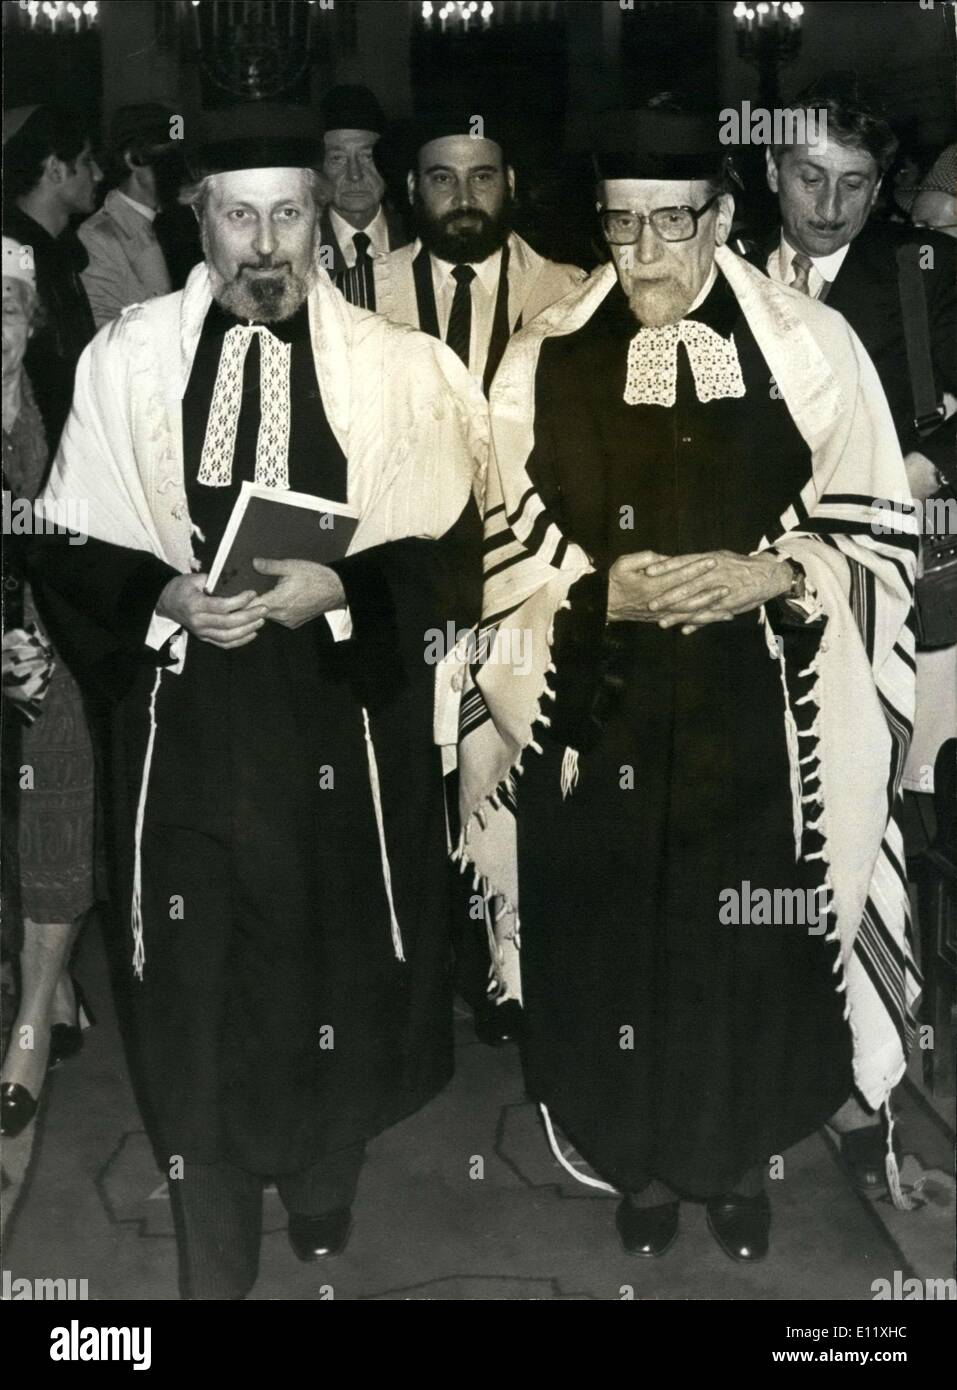 Oct. 24, 1980 - Three of the top Jewish personalities of France met at the synagogue on Rue de la Victoire: Alain Goldmann (left), France's Head Rabbi Jacob Kaplan (right), and his future successor, Rabbi Rene Sirat. - Stock Image